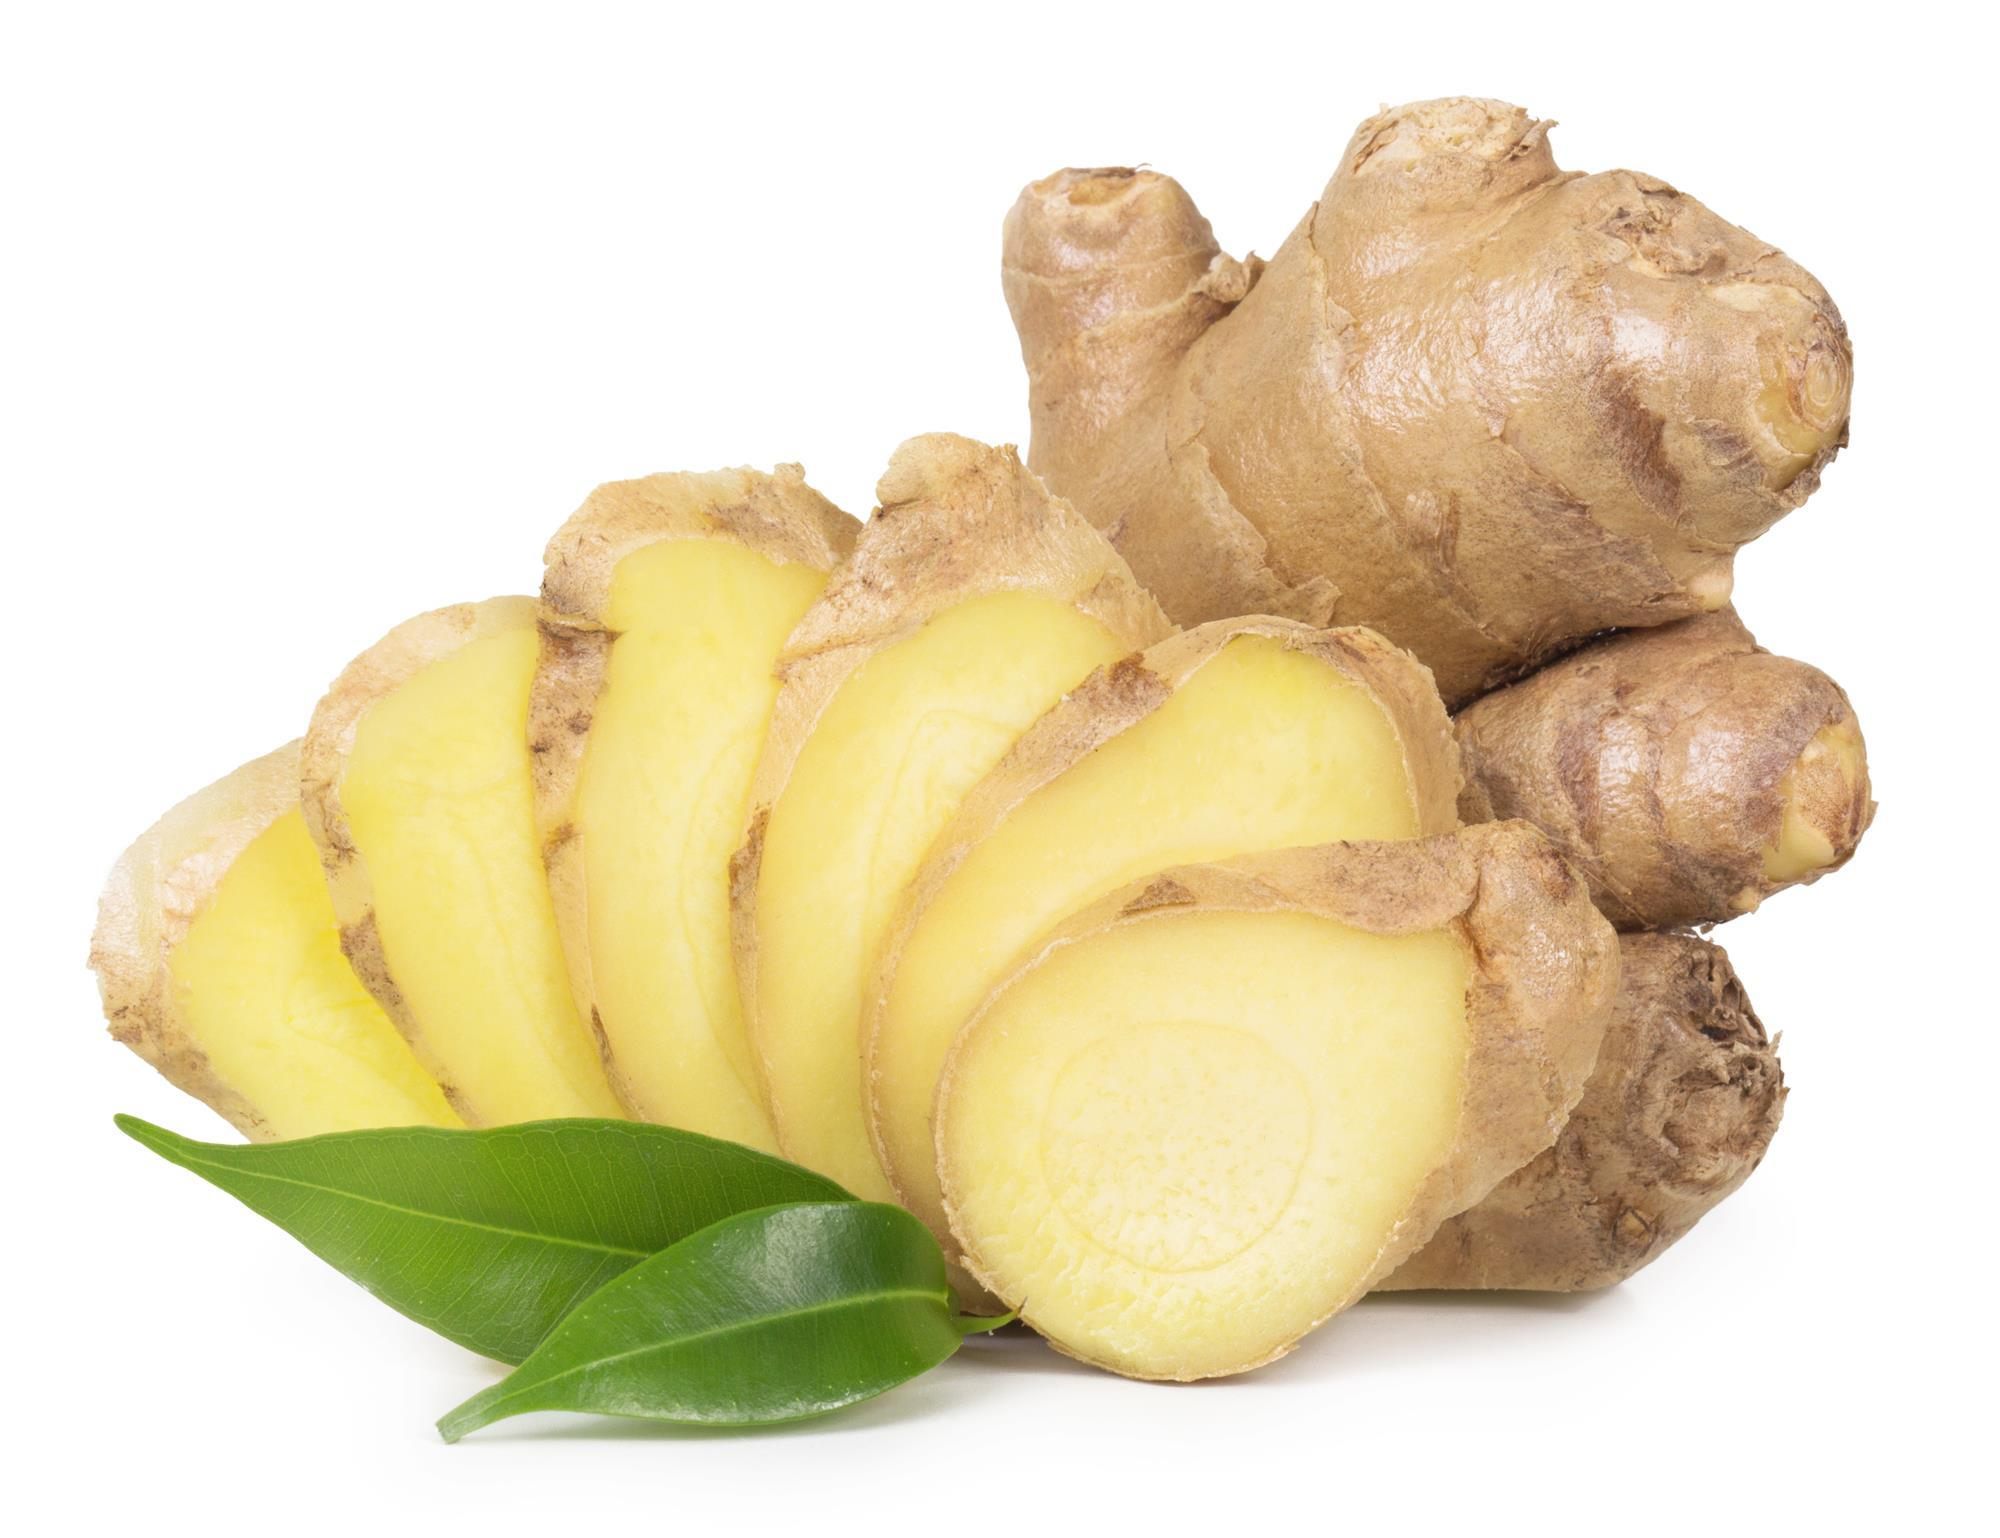 Ginger-meter' tests strength of spice samples | Research ...